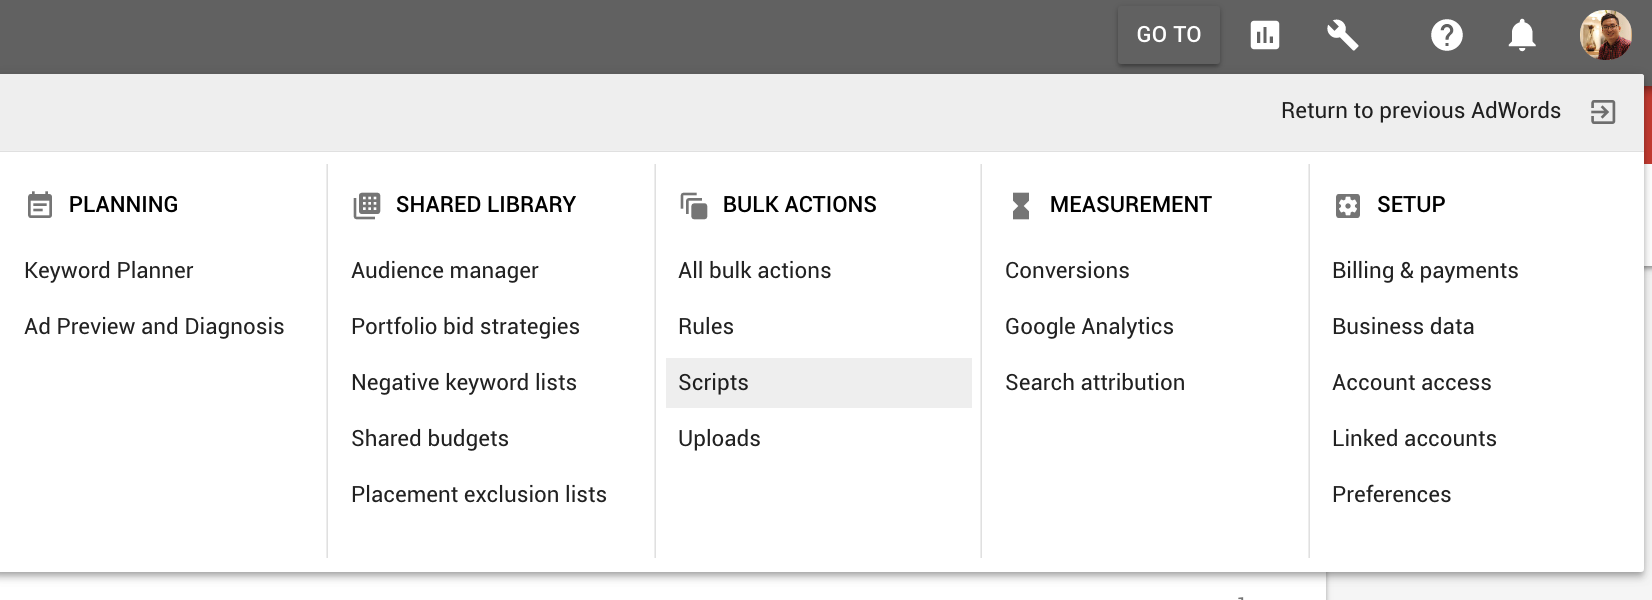 Accessing Adwords Script from the new Adwords Interface